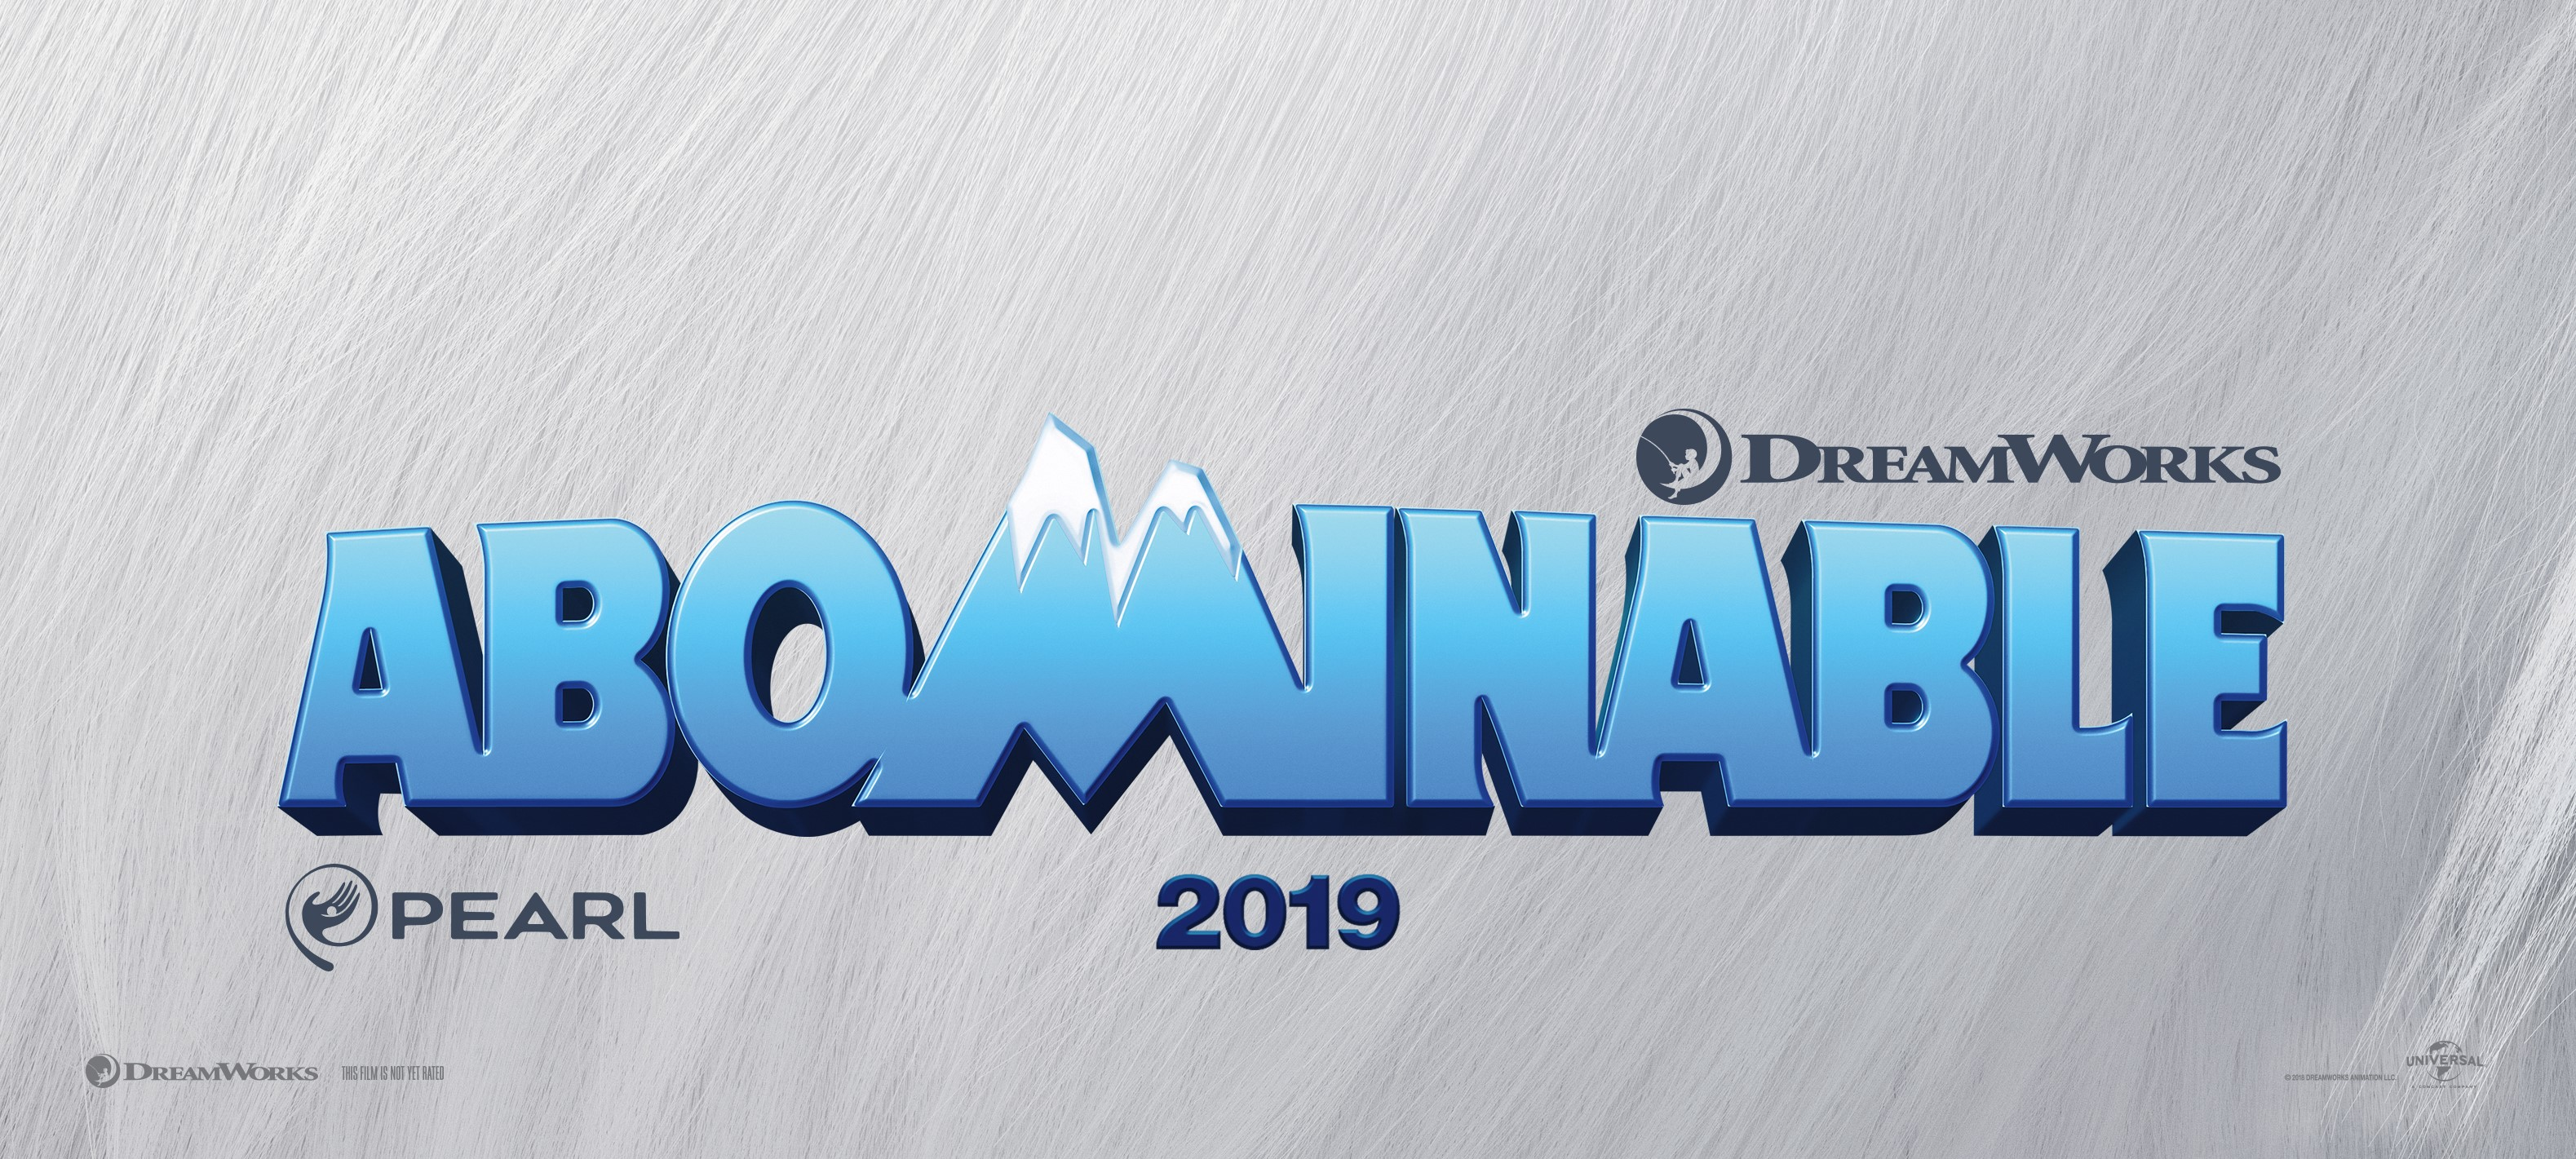 [News] Poster Revealed for DreamWorks ABOMINABLE